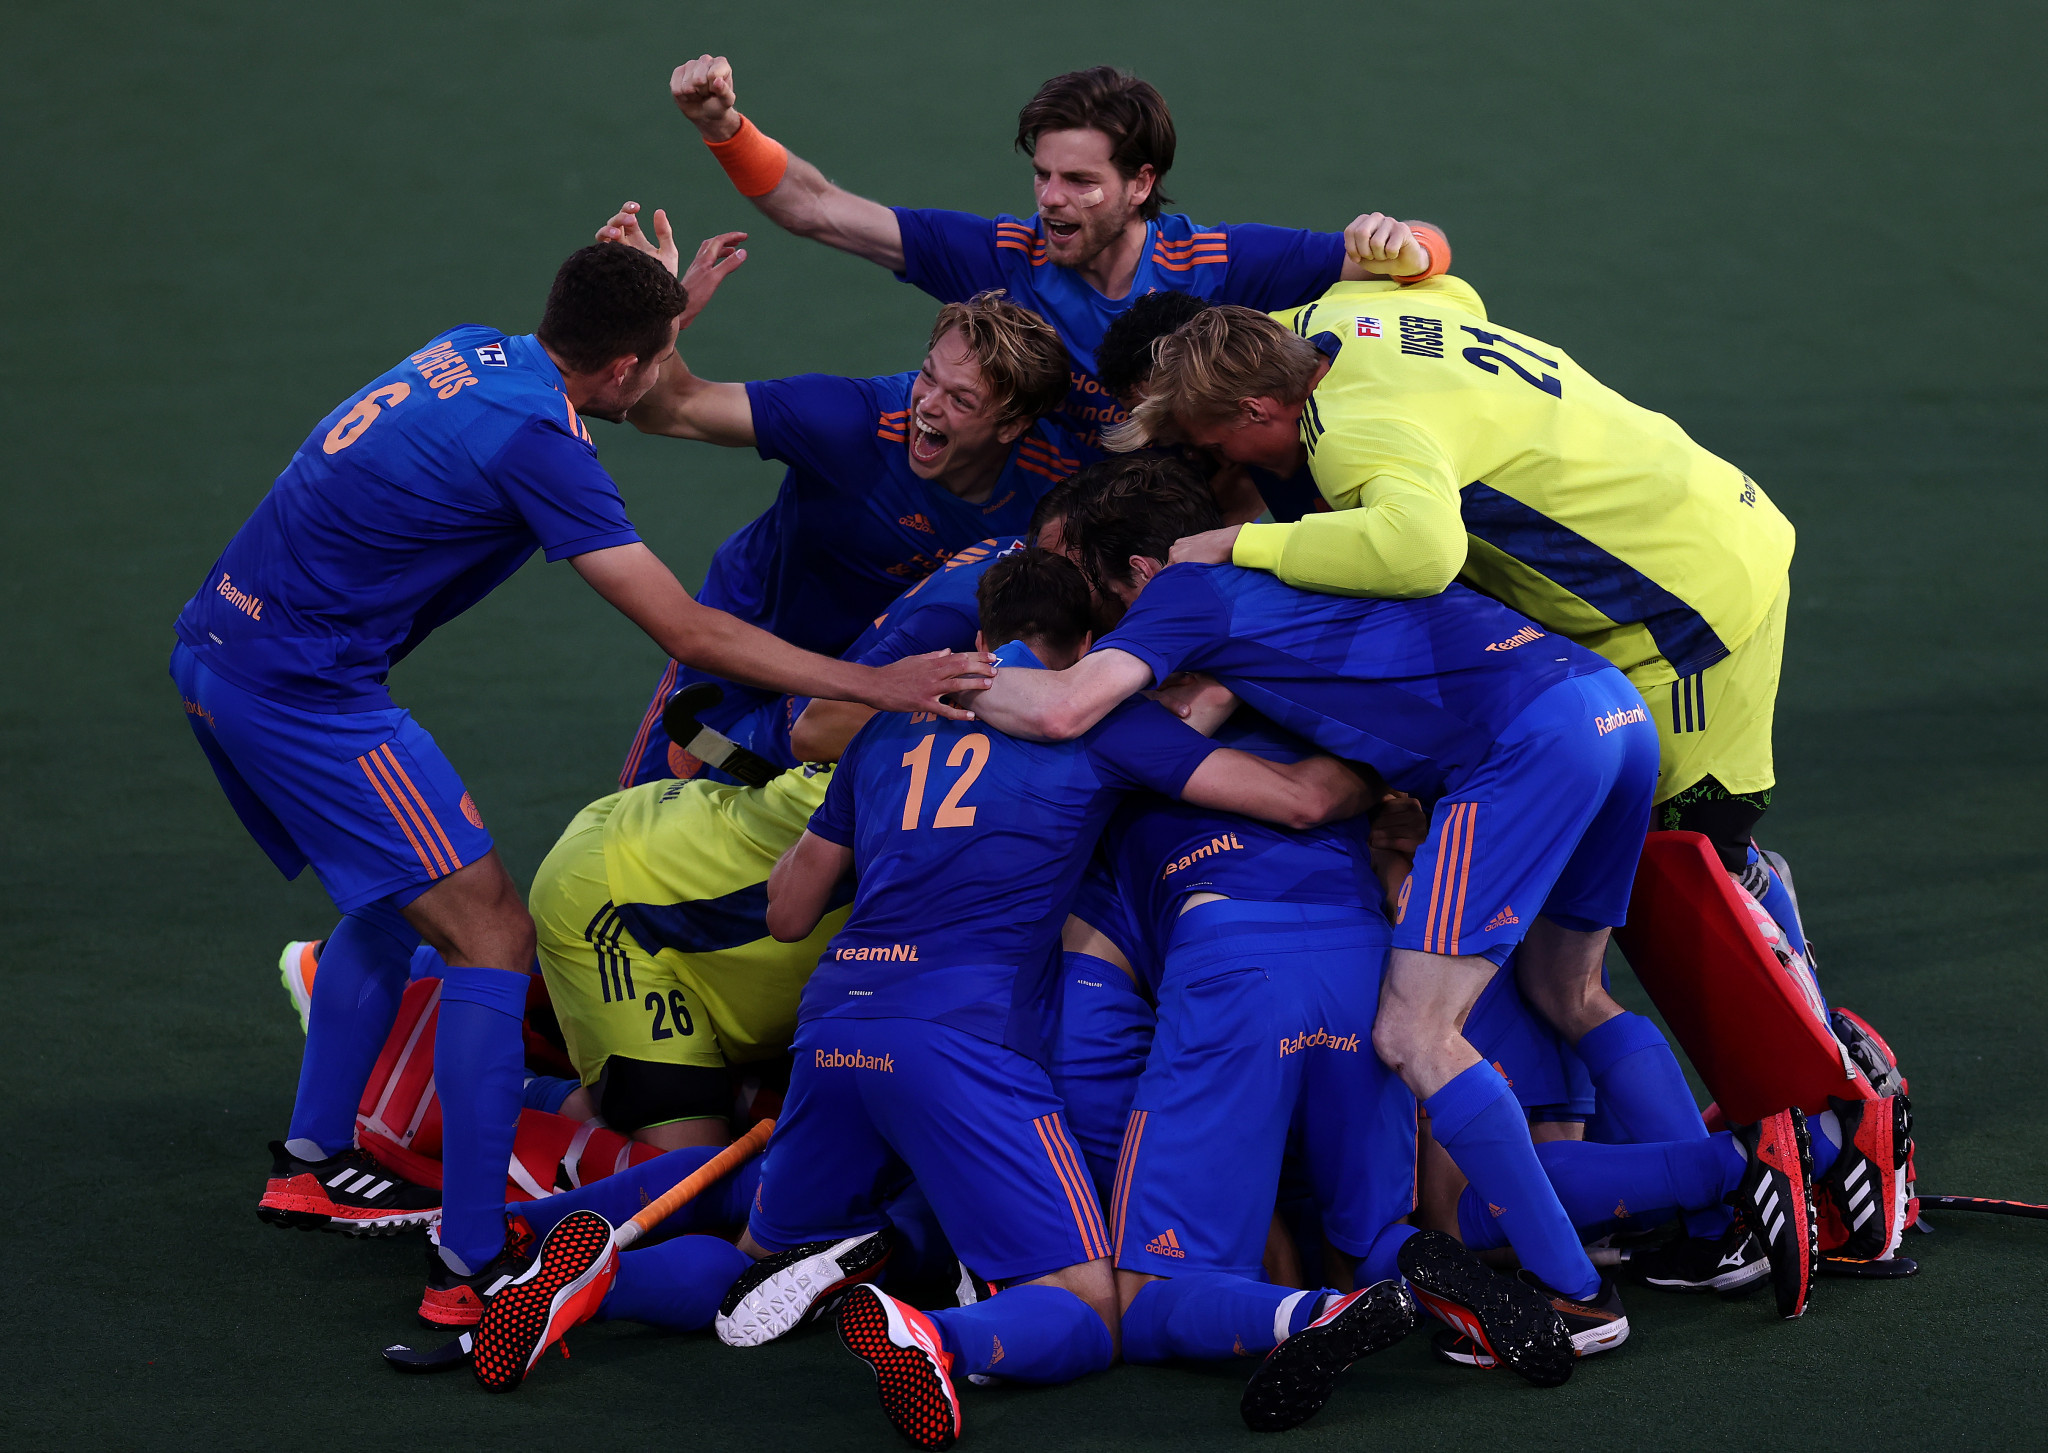 Dutch hosts knock out defending champions Belgian at men's EuroHockey Championship